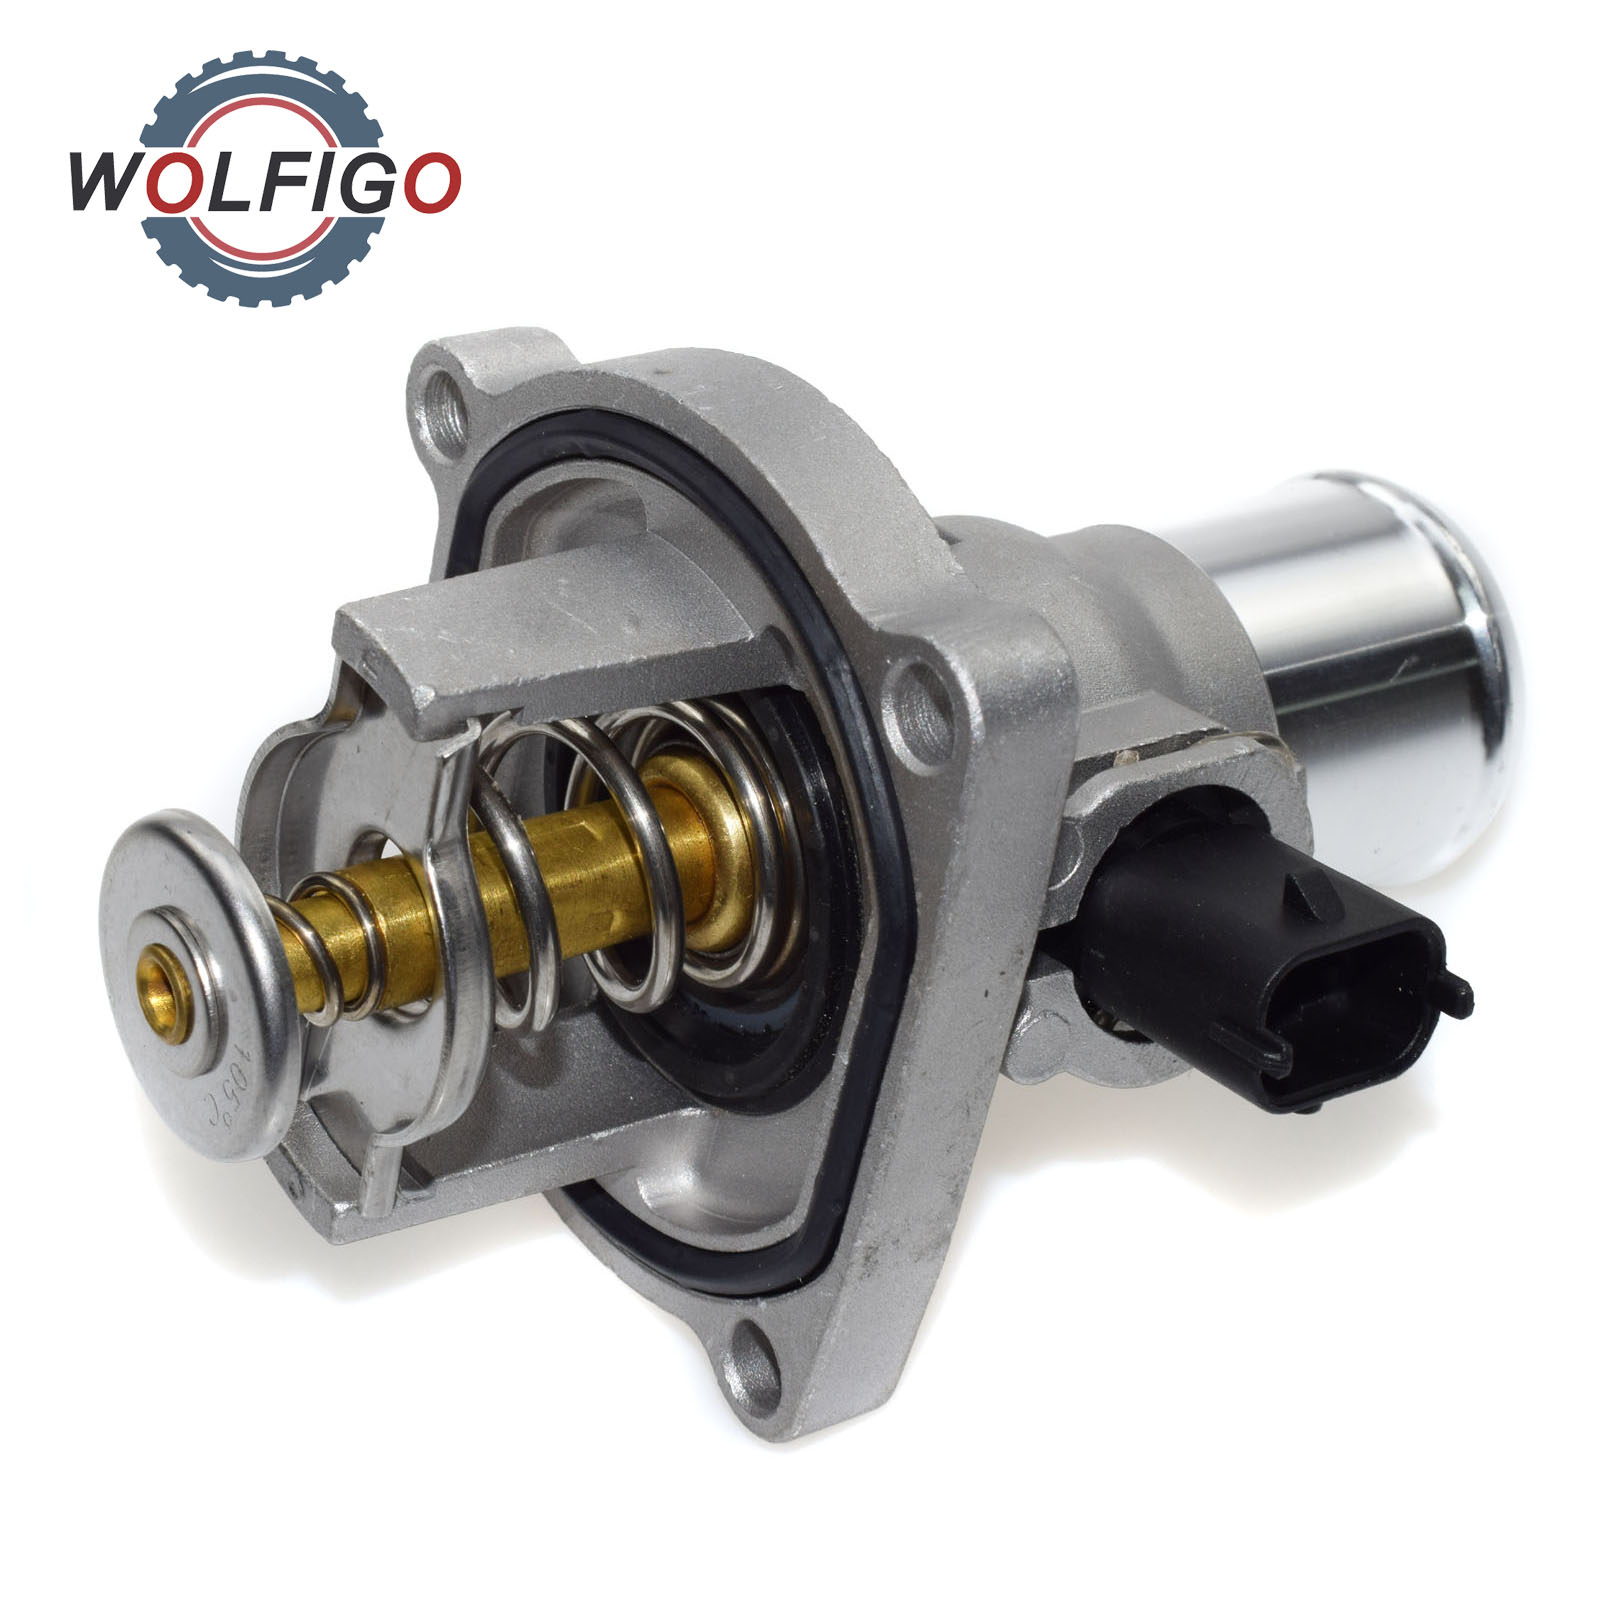 Wolfigo Engine Coolant Thermostat Housing For Chevrolet Cruze Sonic Pontiac Aveo G3 Vauxhall Opel Astra 55564891 55578419 In Thermostats Parts From